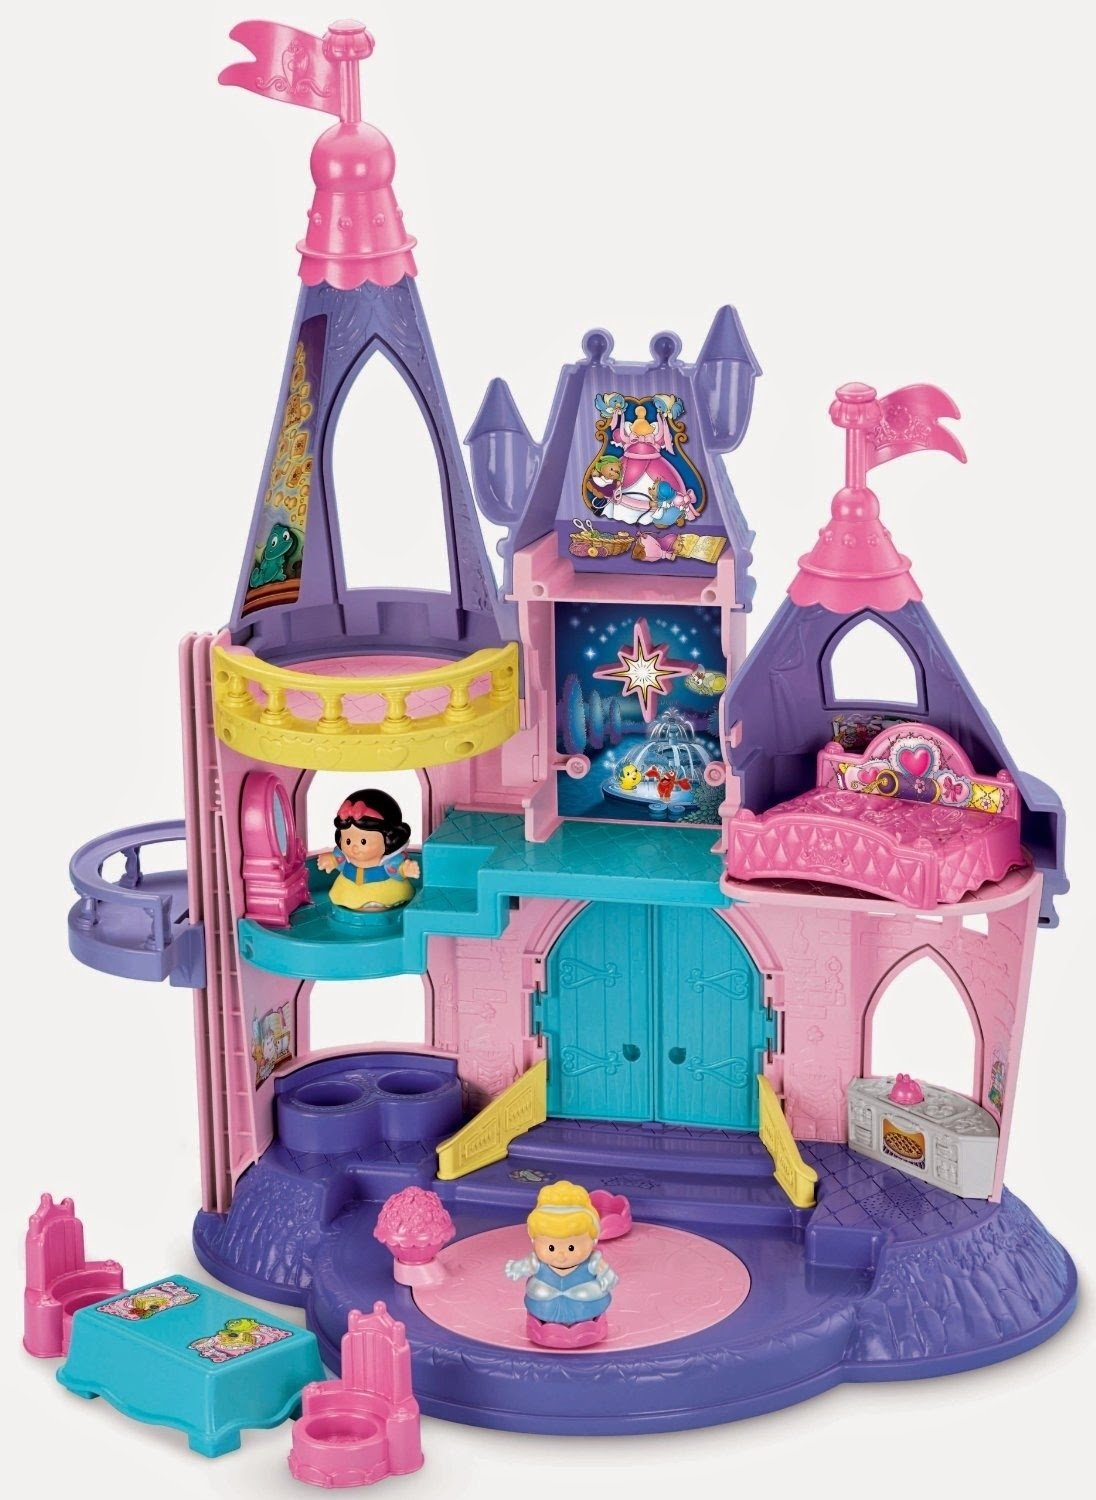 10 Nice Gift Ideas For 2 Yr Old Girl toddler approved favorite gifts for 2 year olds 2 2021